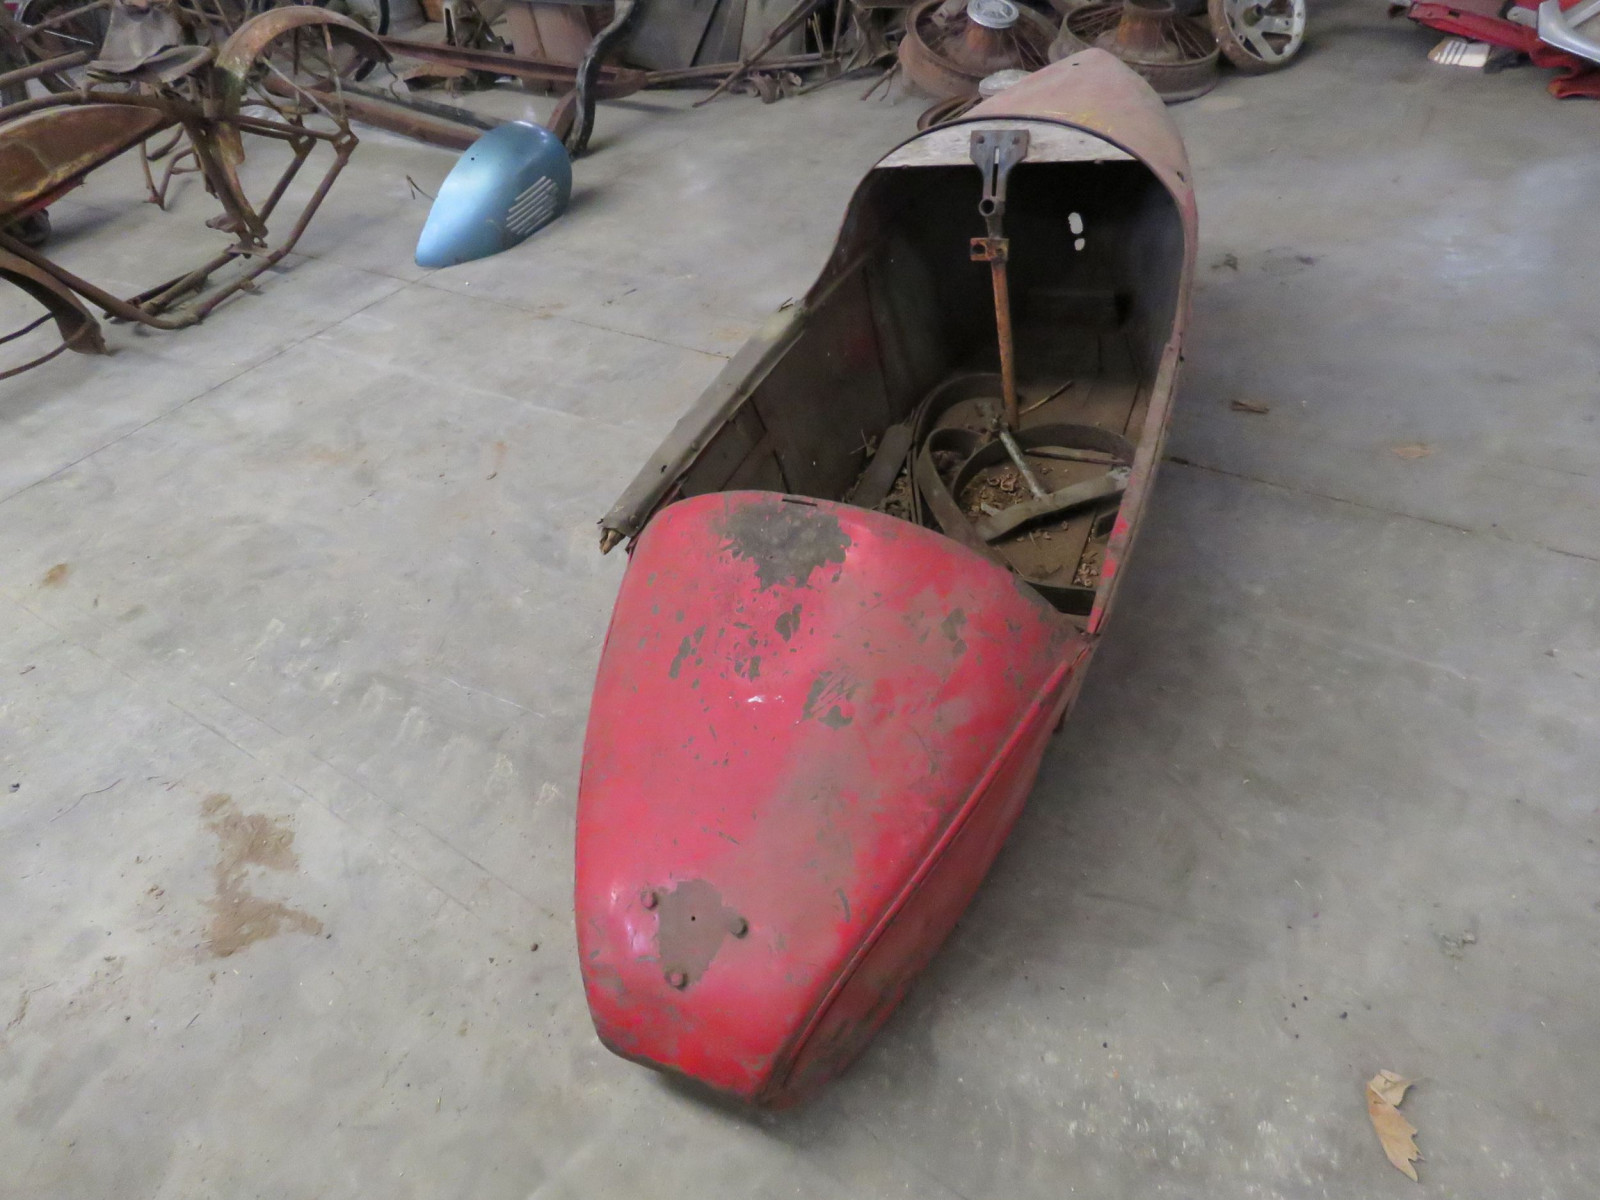 RARE Indian Motorcycle Side Car - Image 3